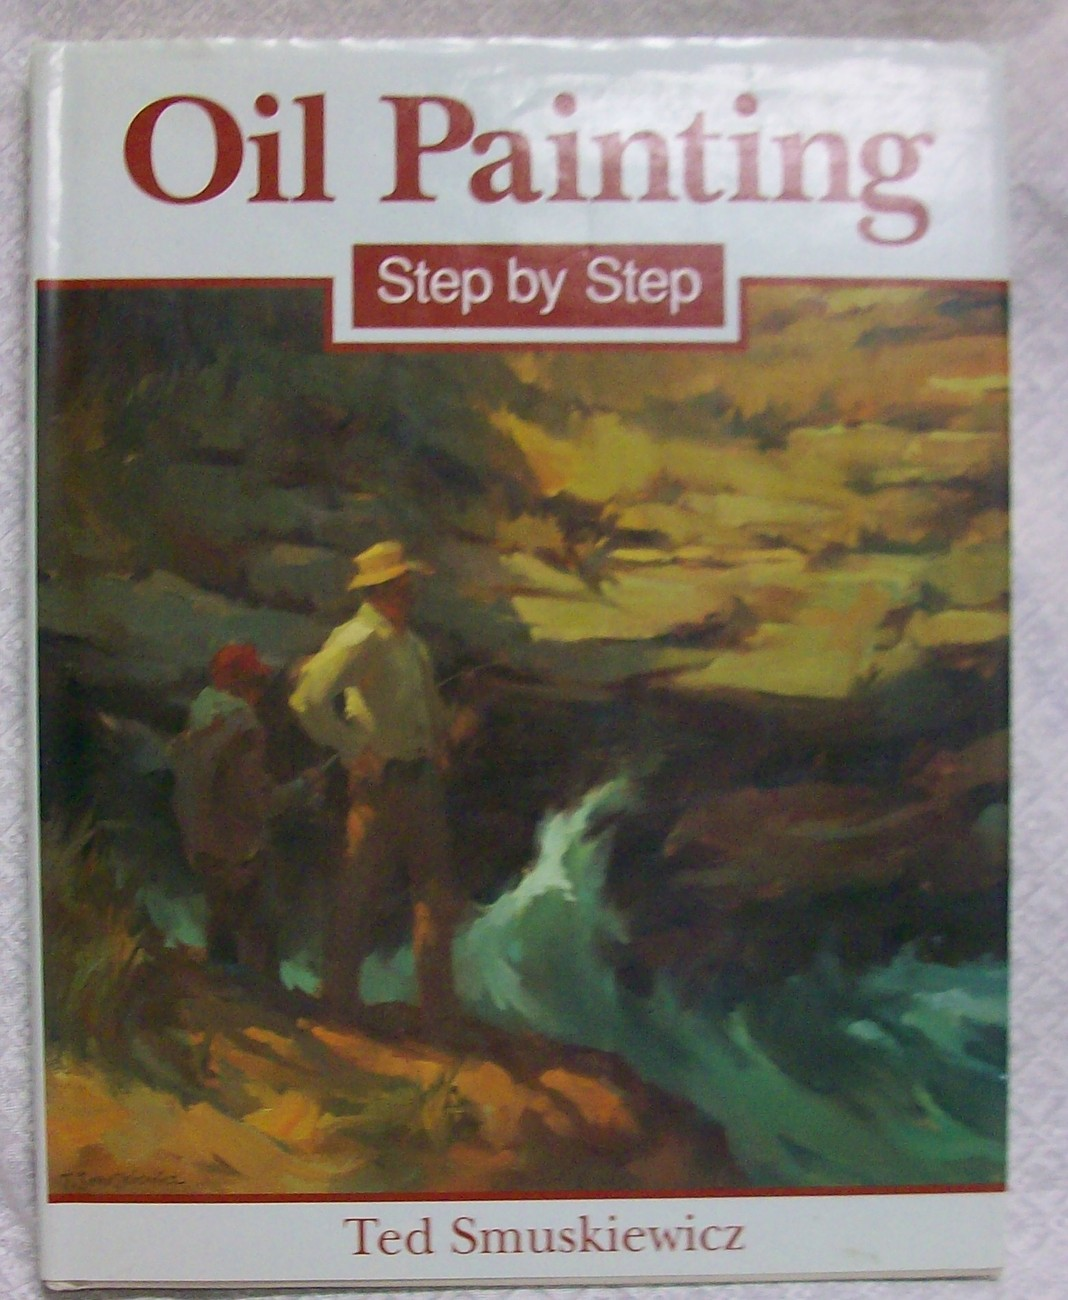 Oil Painting Step by Step by Smuskiewicz Ted